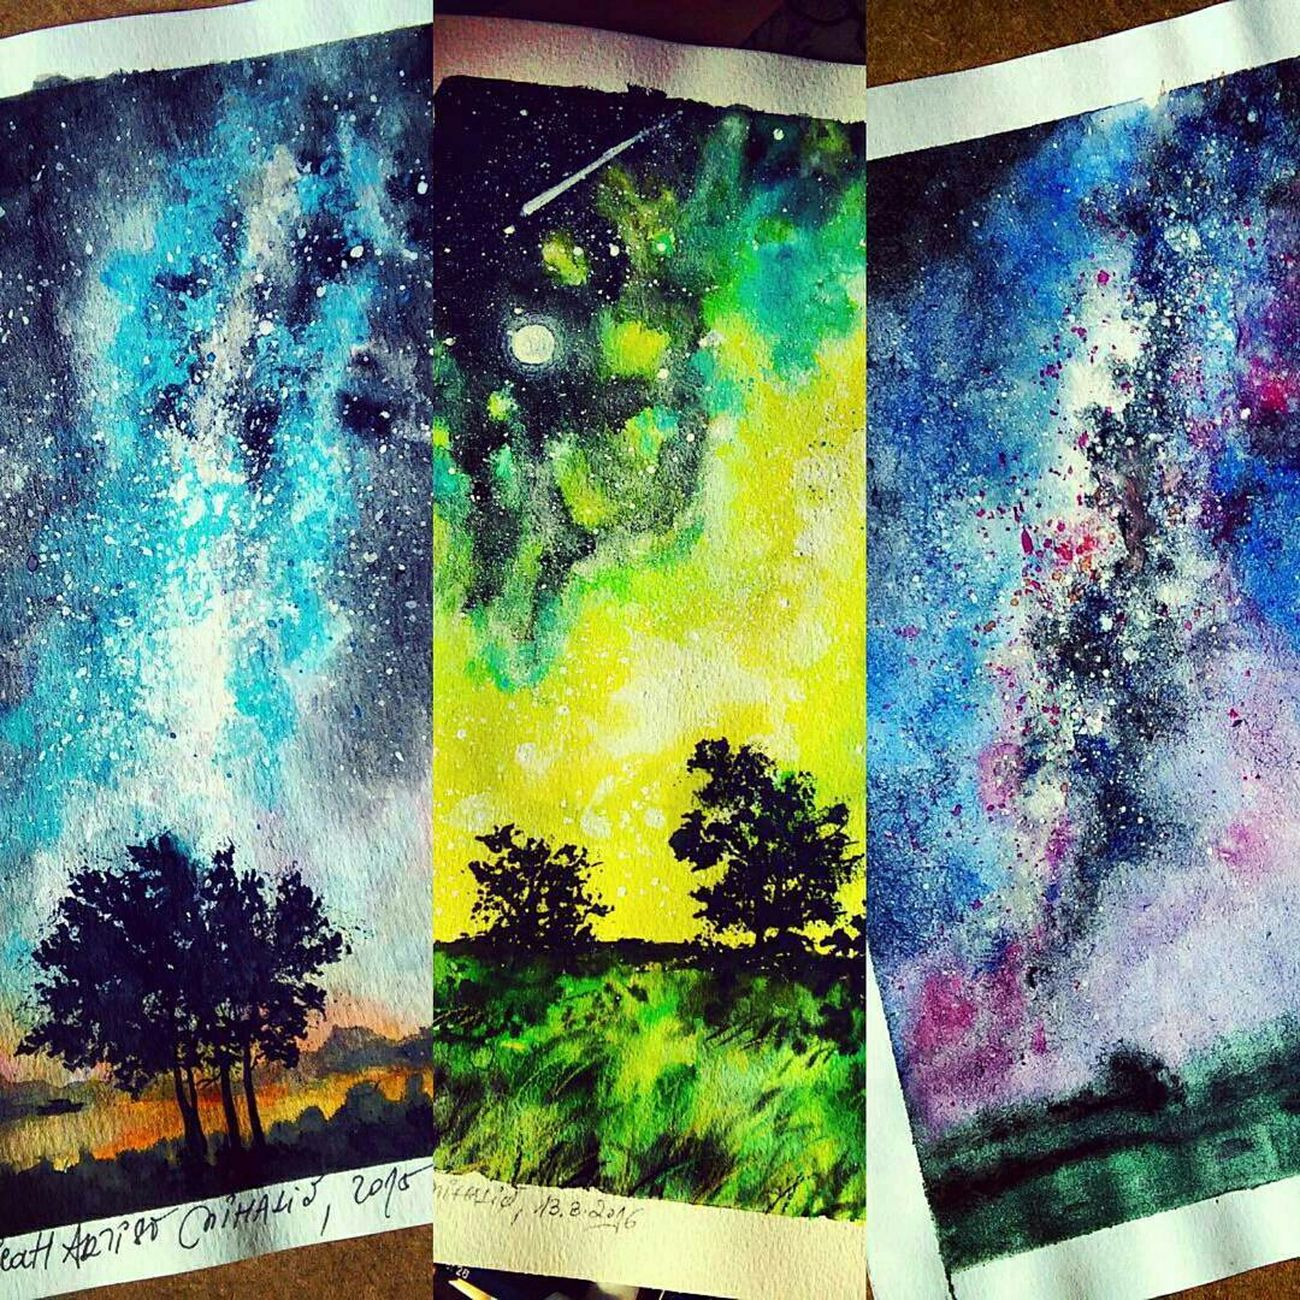 Some of my illustrations from months ago. Nature Landscape Illustration Milky Way Art Arts Arte Check This Out Beautiful Picture Drawing Work ArtWork Creative Design Artist Draw Sketches Sketching Artoftheday Creativity Artistic My Artwork Sketch Explore